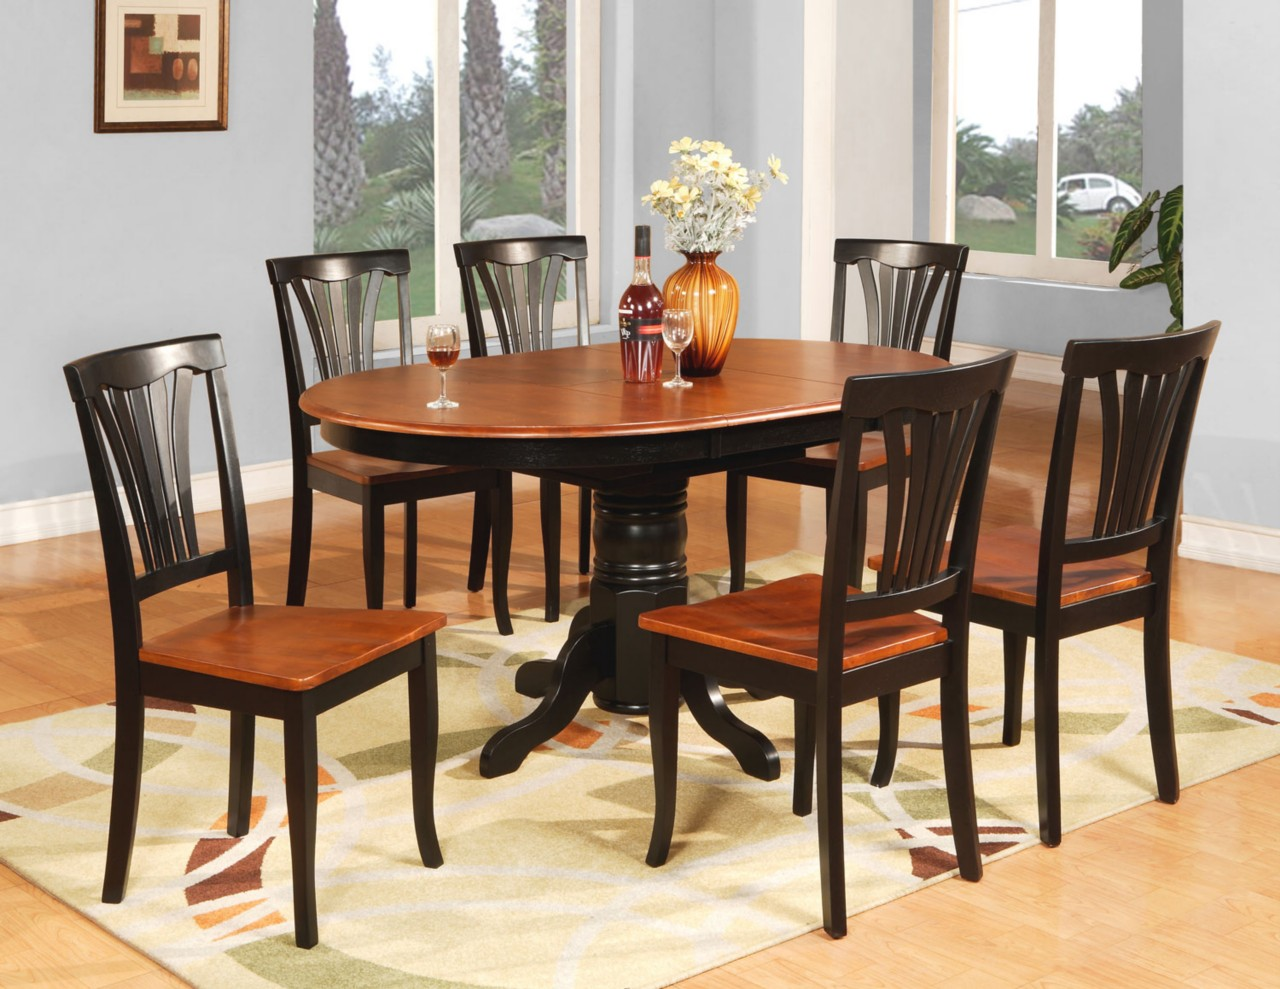 7 PC OVAL DINETTE KITCHEN DINING ROOM TABLE amp 6 CHAIRS eBay : 481368487o from www.ebay.com size 1280 x 989 jpeg 245kB